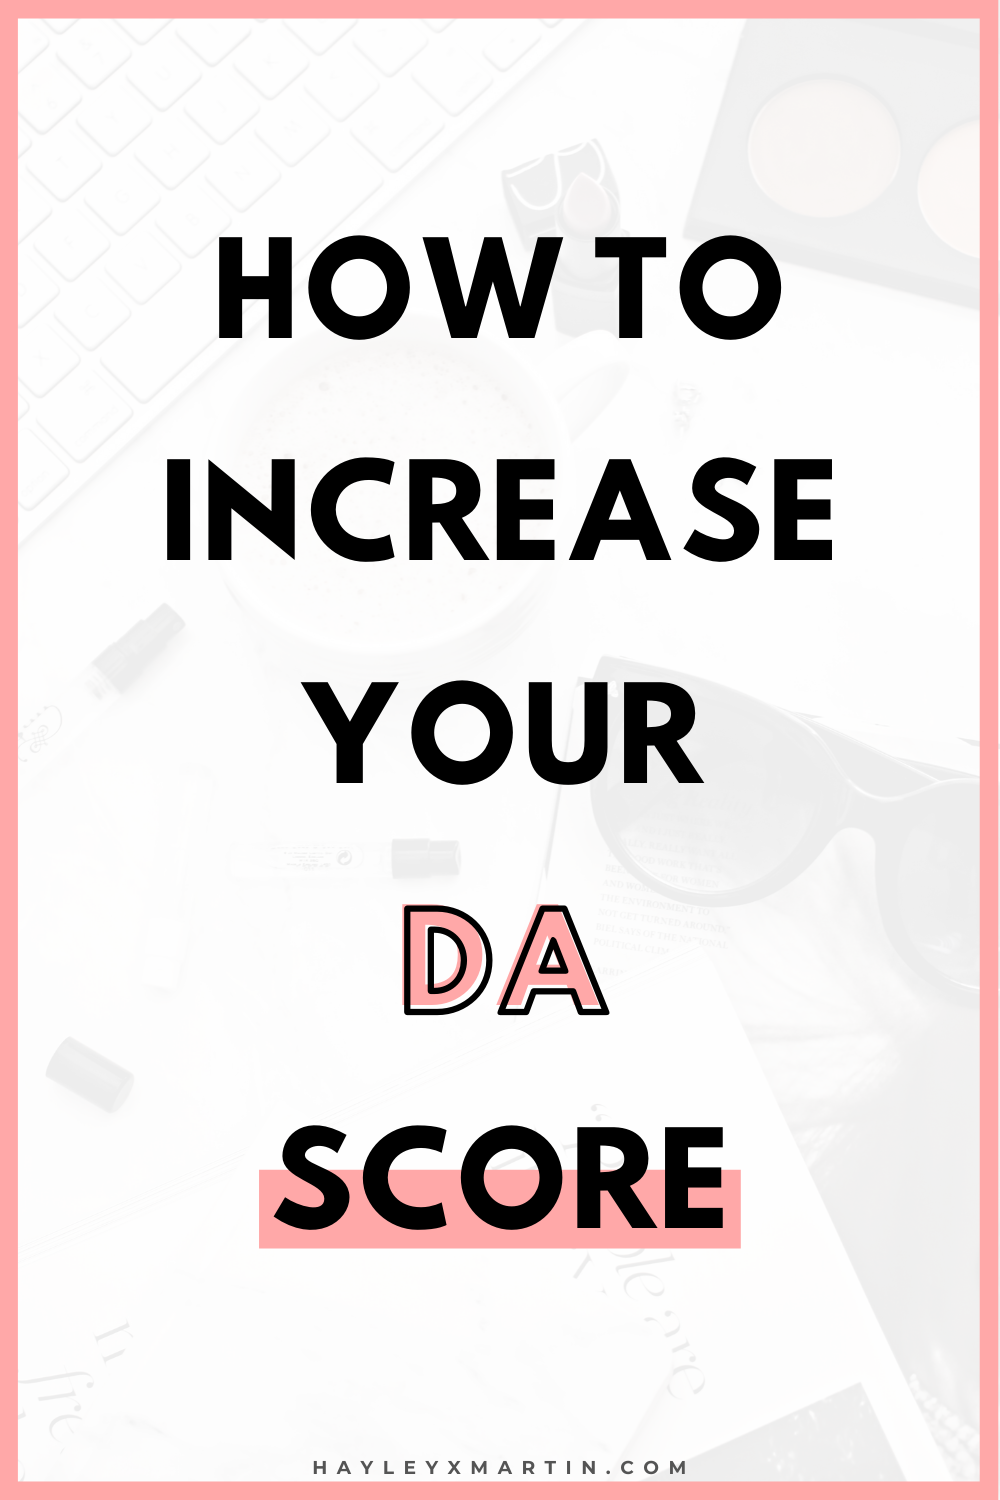 HOW TO INCREASE YOUR DA SCORE | HAYLEYXMARTIN.COM